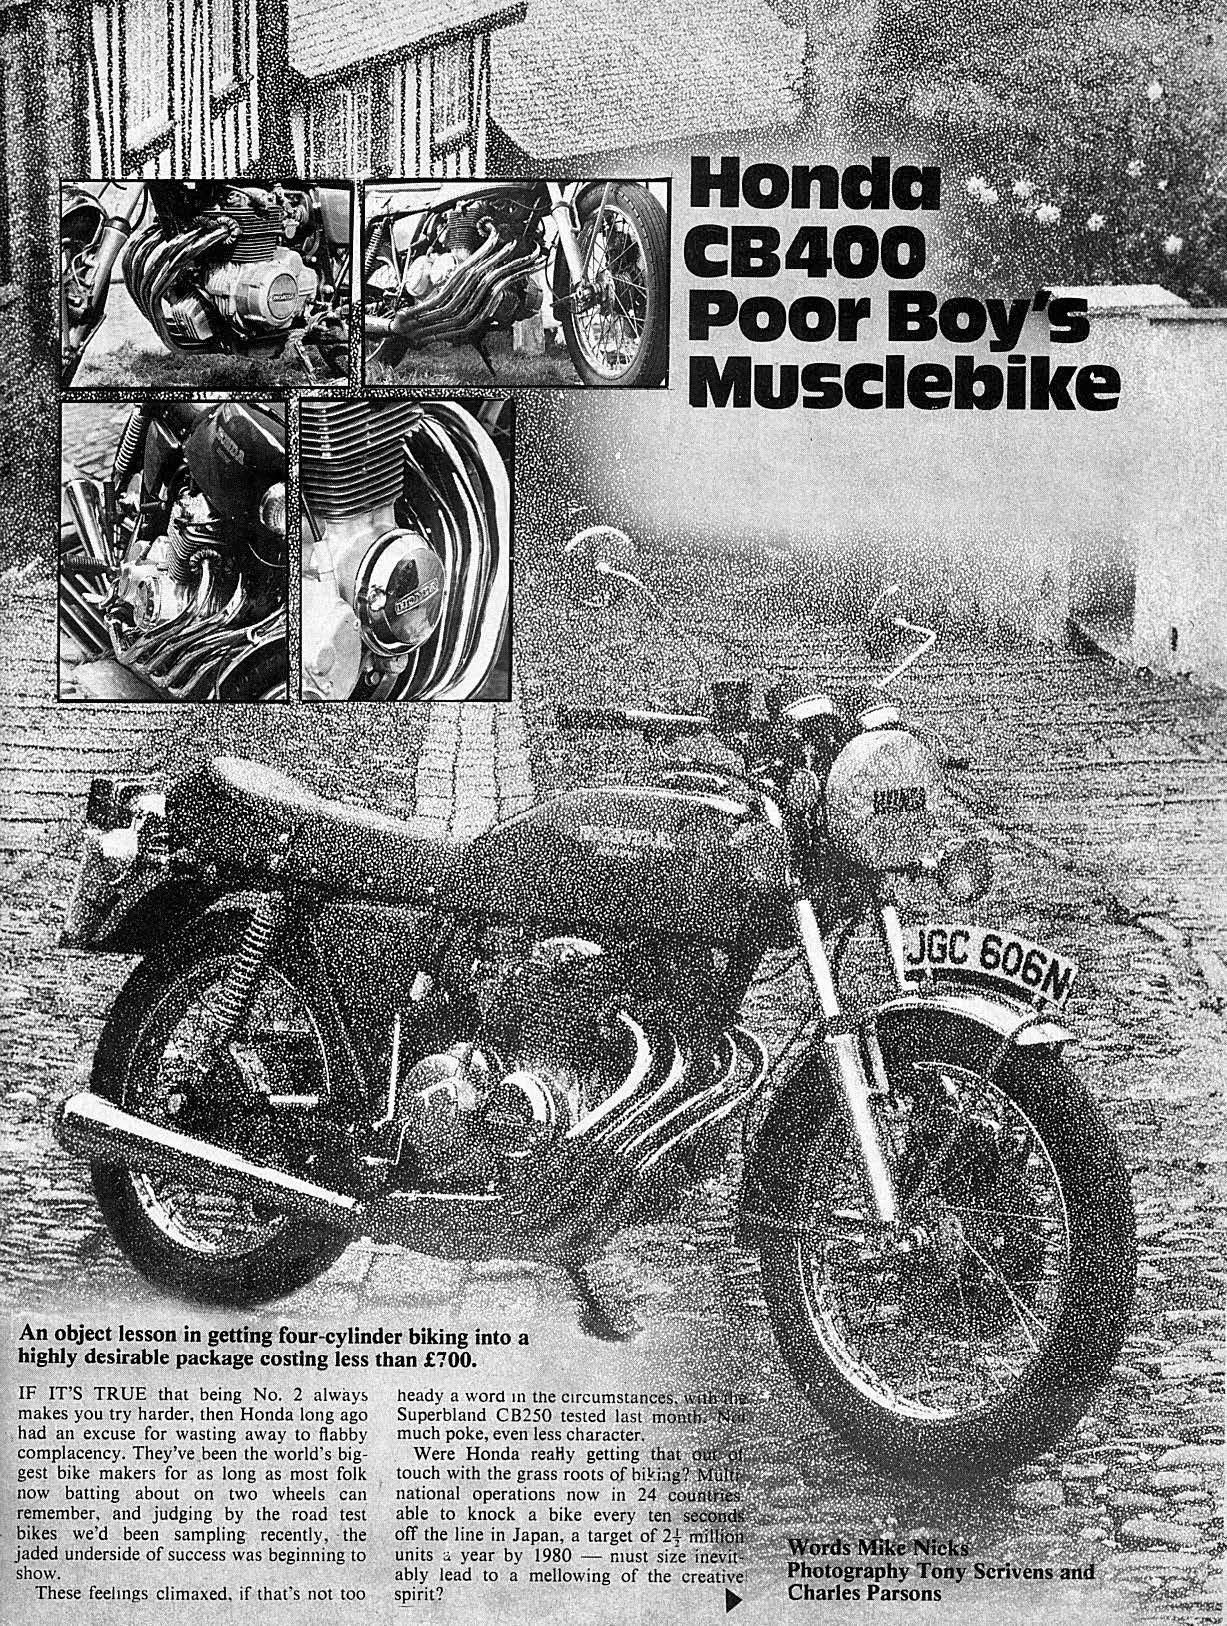 Honda CB400F - Poor boy's musclebike (1975)